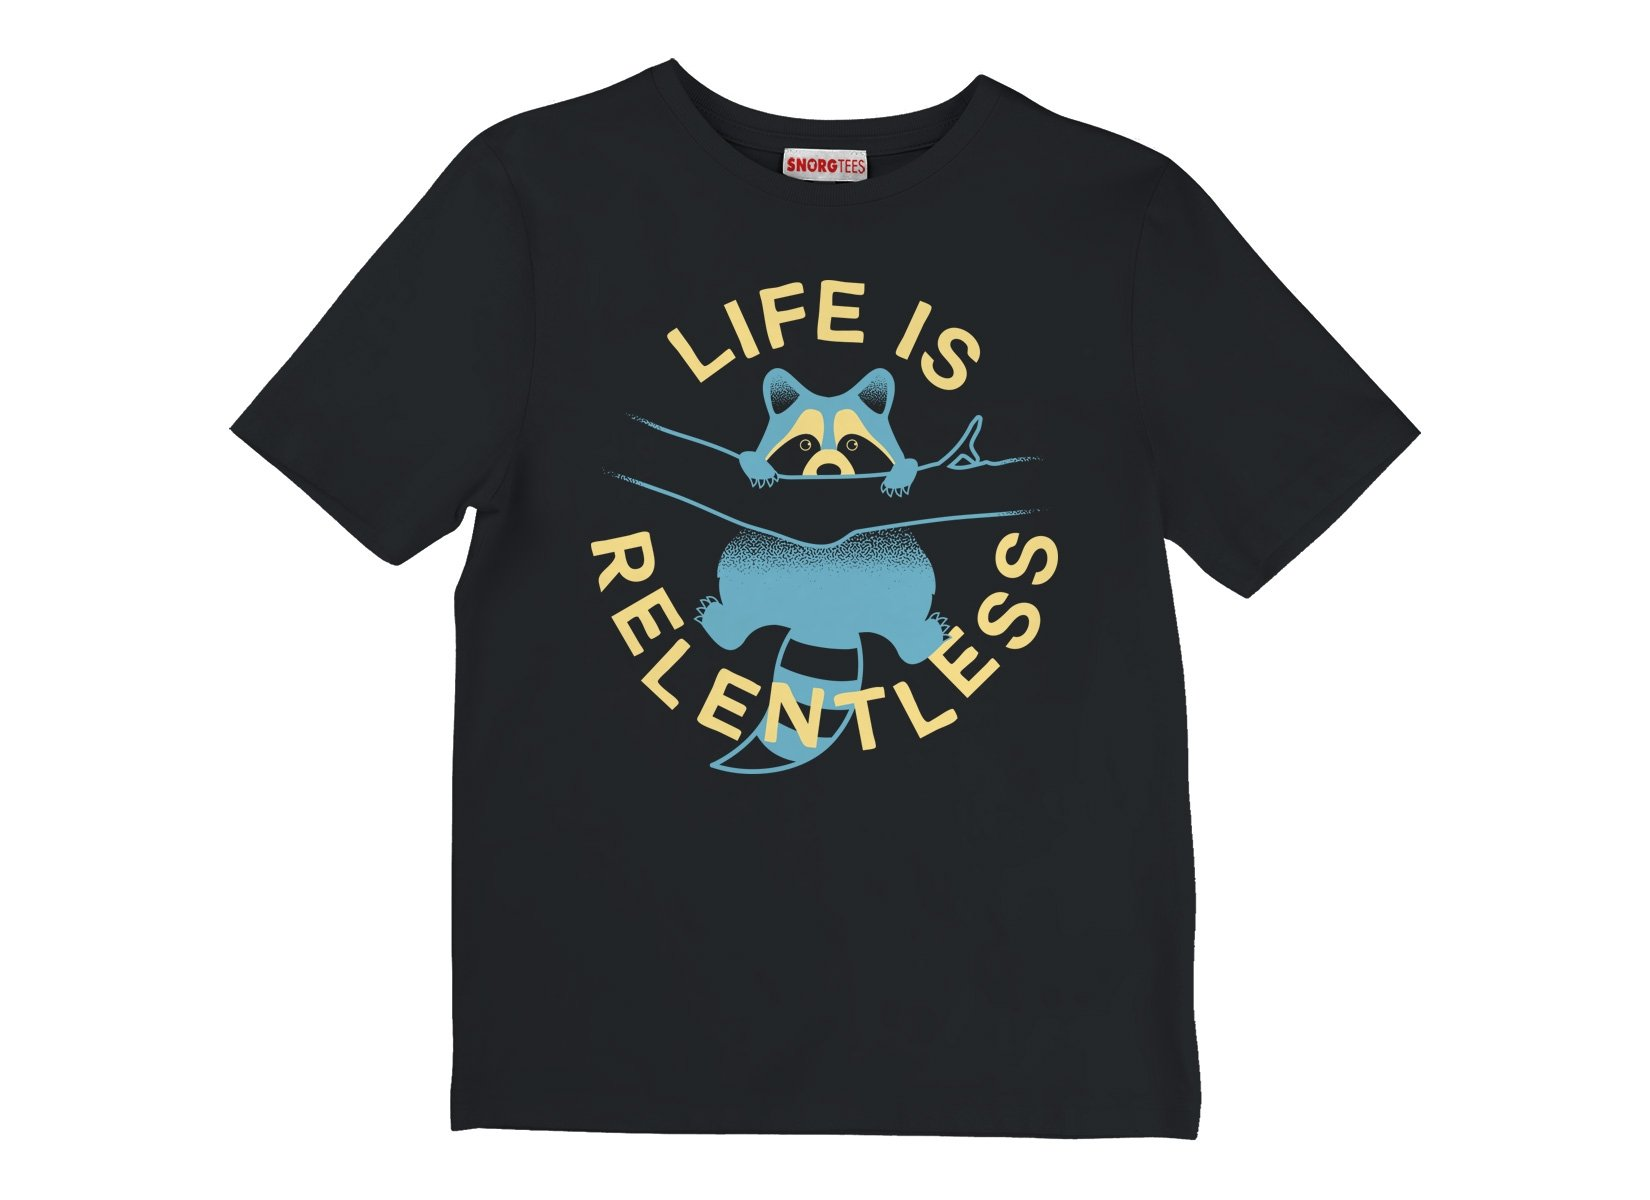 Life Is Relentless on Kids T-Shirt